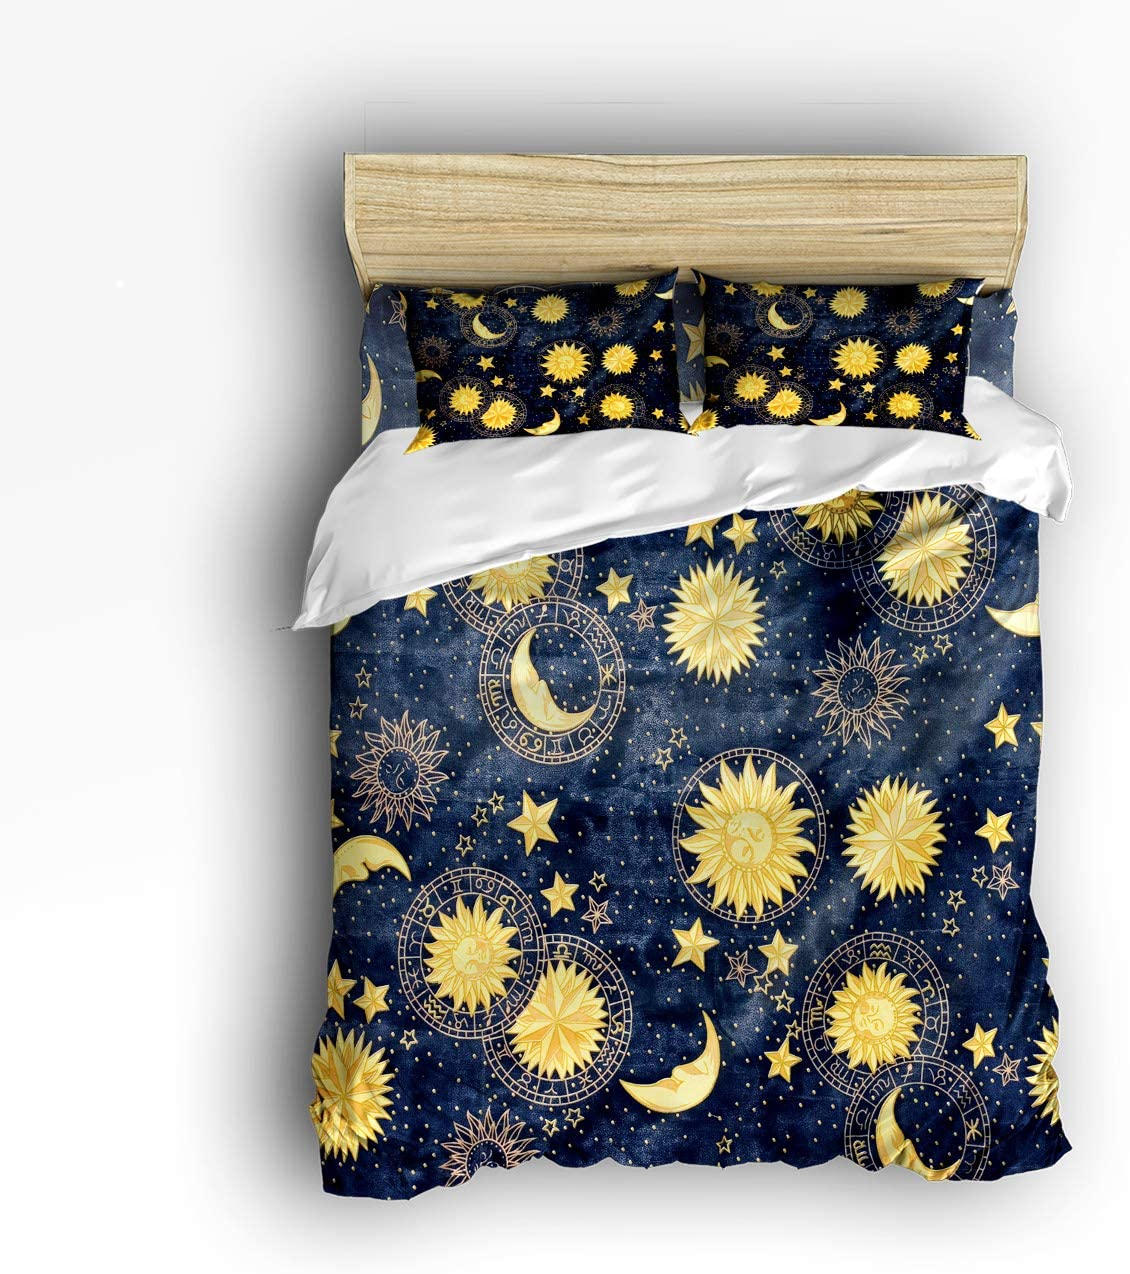 Cloud Dream Home 4 Piece Bedding Set, Boho Chic Art Golden Sun Moon and Stars Over Blue Black Sky Duvet Cover Set Quilt Bedspread for Childrens/Kids/Teens/Adults Queen Size(Large)